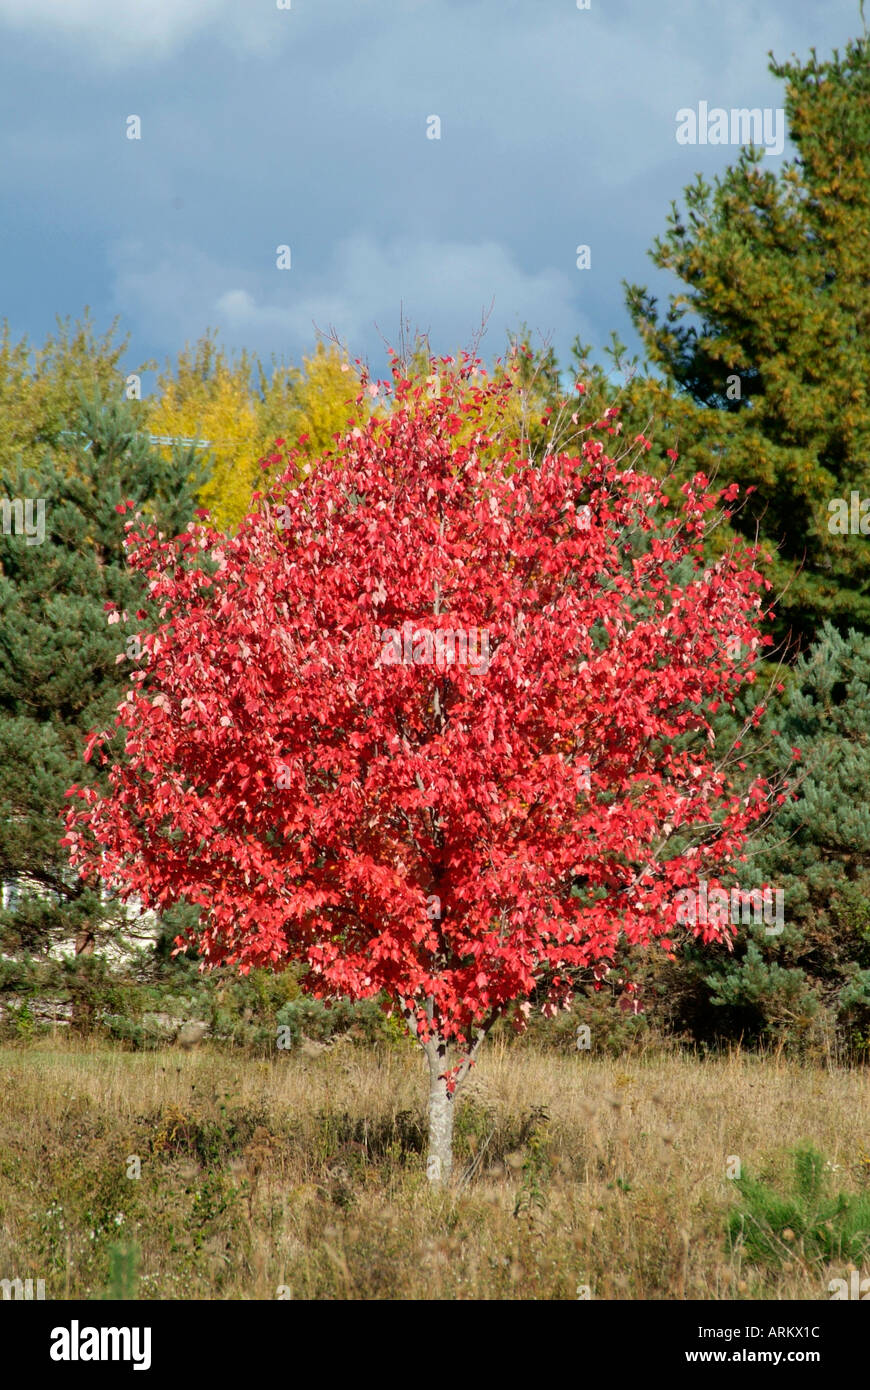 Colorful Foliage Of A Red Sugar Maple Tree During Autumn Fall Color Stock Photo Alamy,Personal Space Meme